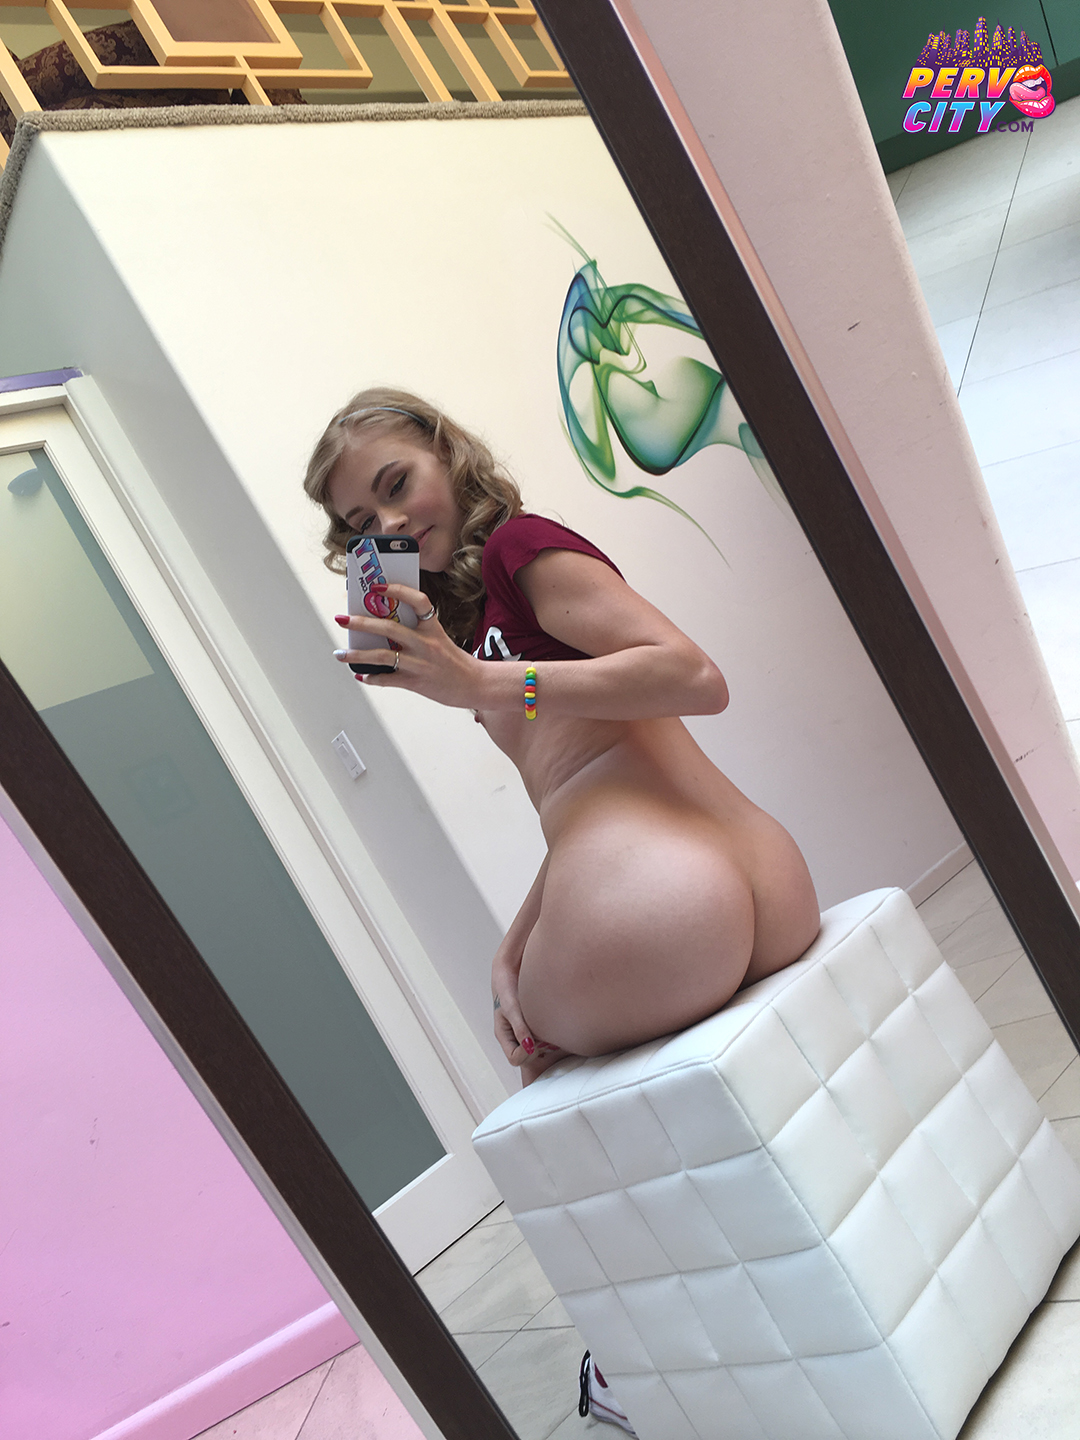 February 2018 PervCity Bonus Selfie Blog